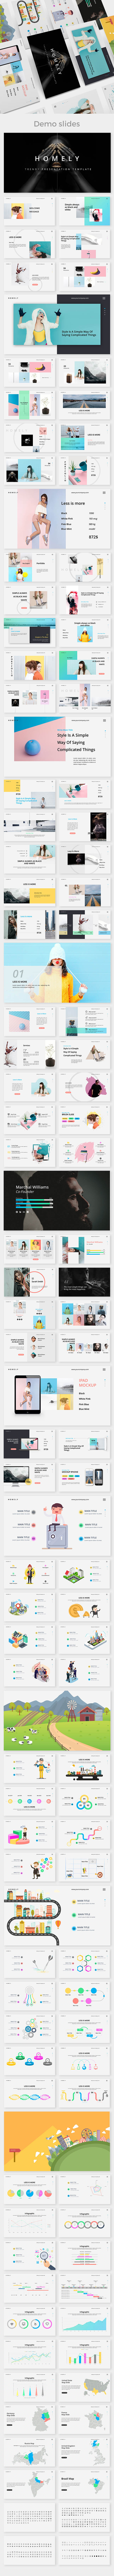 Homely Minimal Keynote Template - Creative Keynote Templates